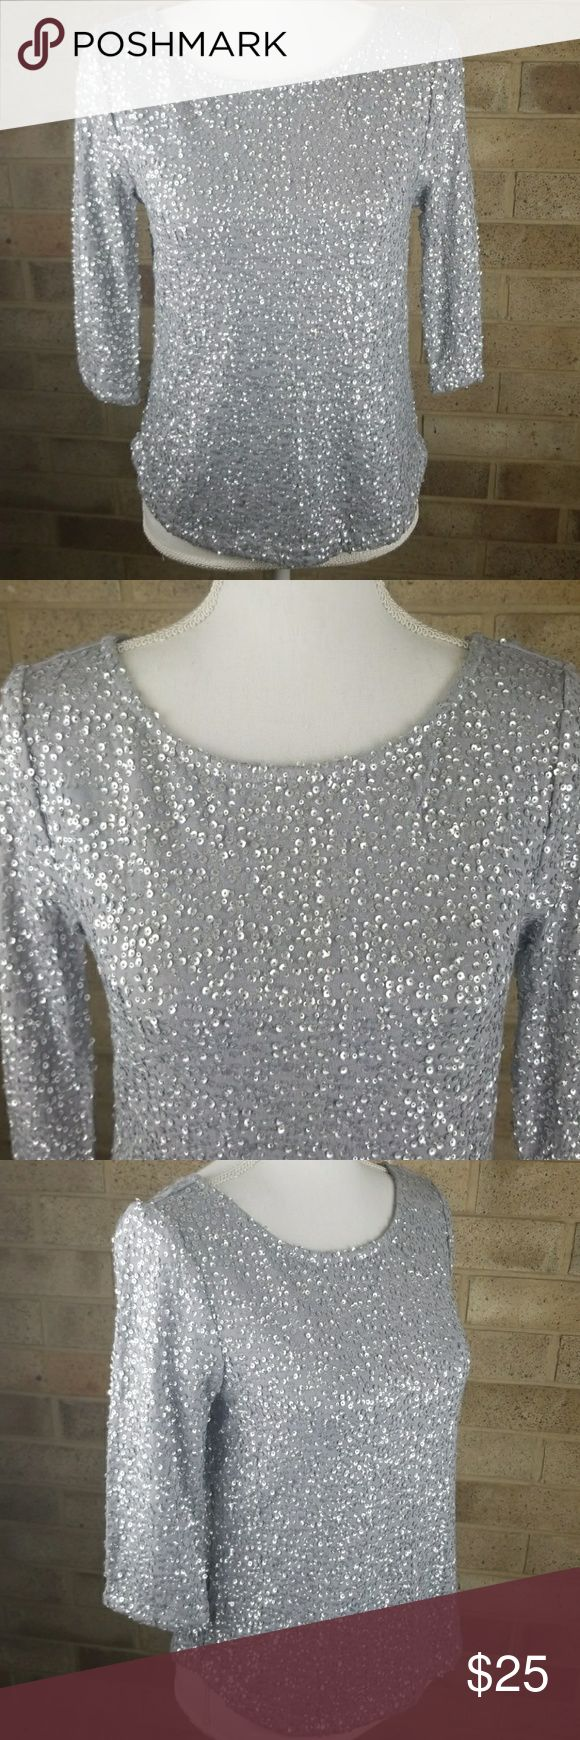 JOE FRESH Silver Grey Sequin Blouse Small I have here this super cute grey and silver quarter sleeve blouse. This blouse is from Joe Fresh and that is a size Small. There are no signs of wear, no stains or rips!  I LOVE OFFERS SEND ONE! BUNDLE TO SAVE! SORRY NO TRADES! Joe Fresh Tops Tees - Long Sleeve